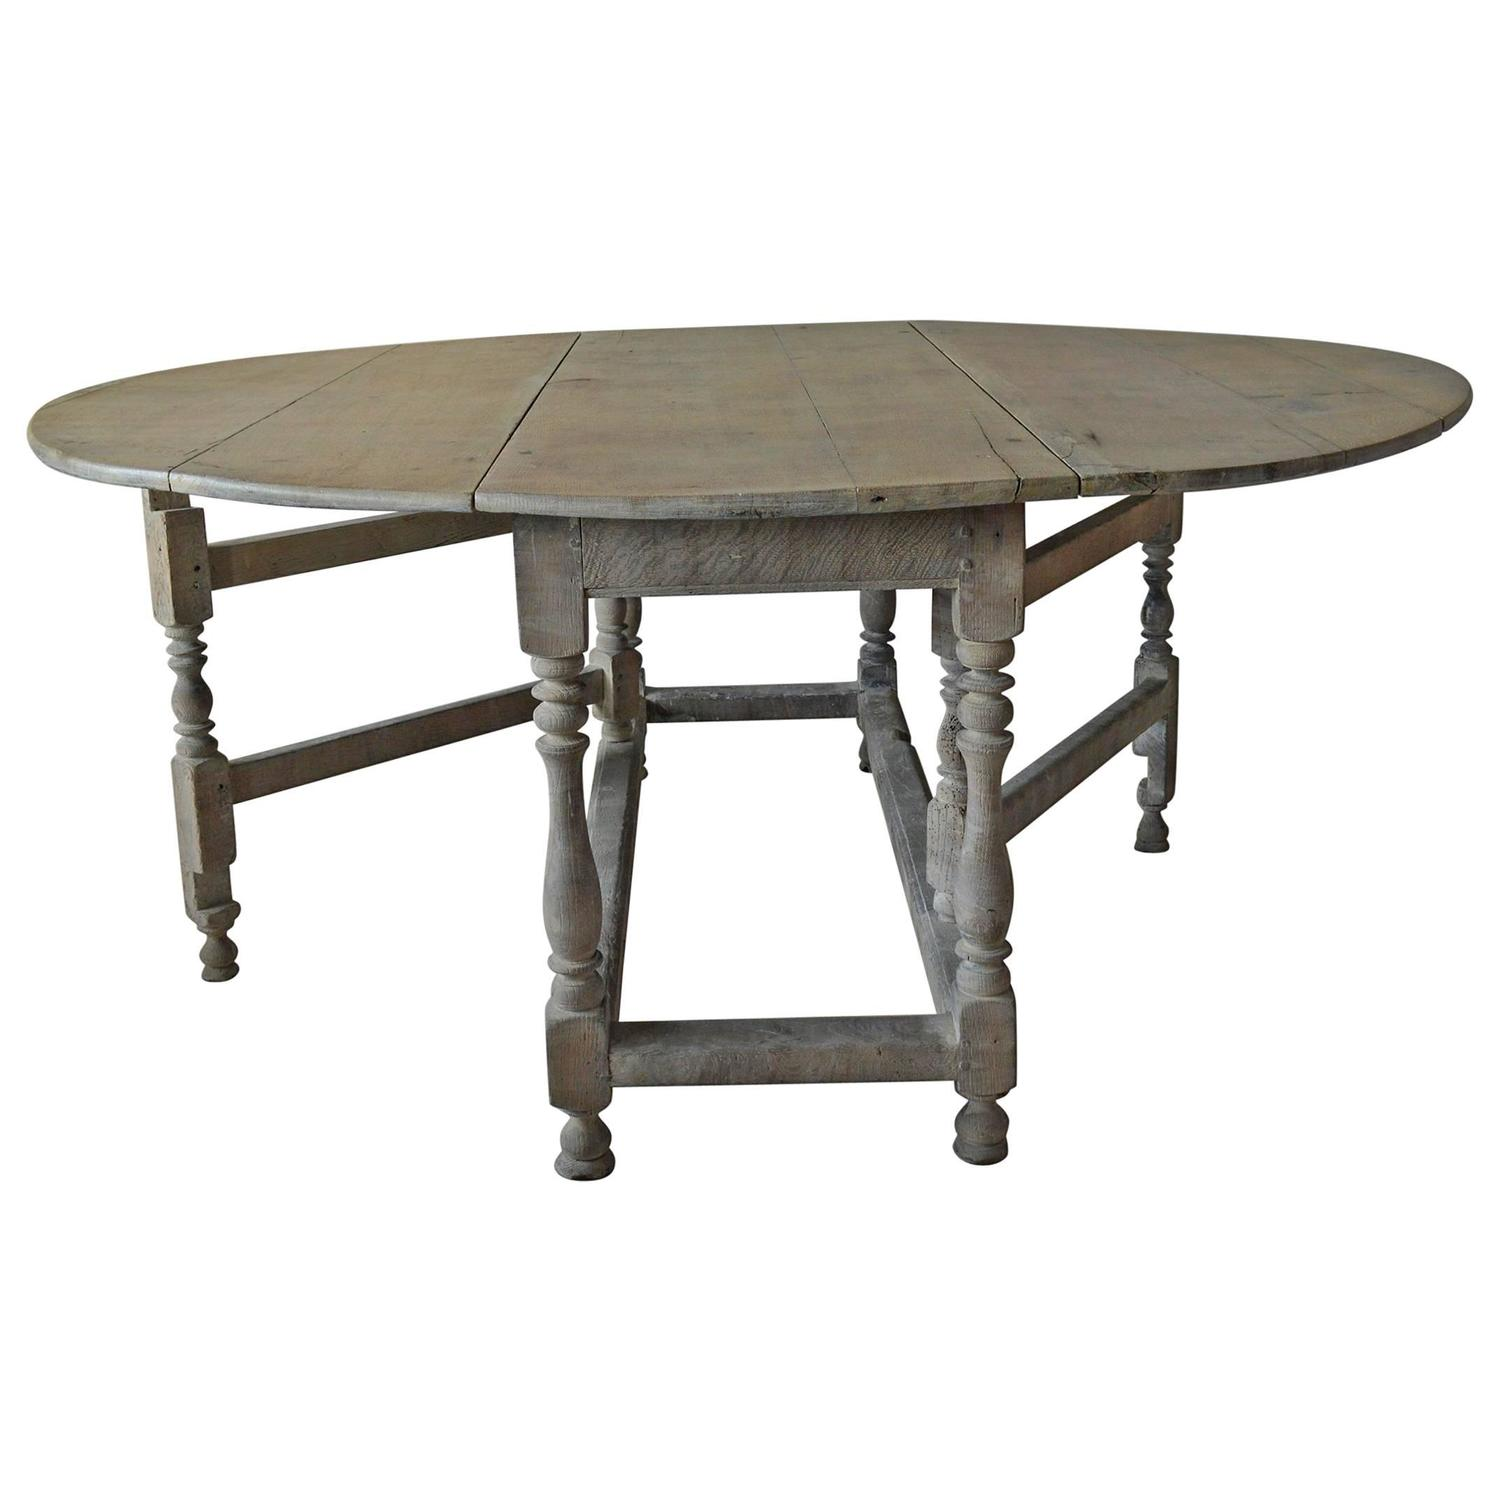 Antique farm dining table - Large Antique Limed Oak Round Or Oval Dining Table English 18th Century For Sale At 1stdibs